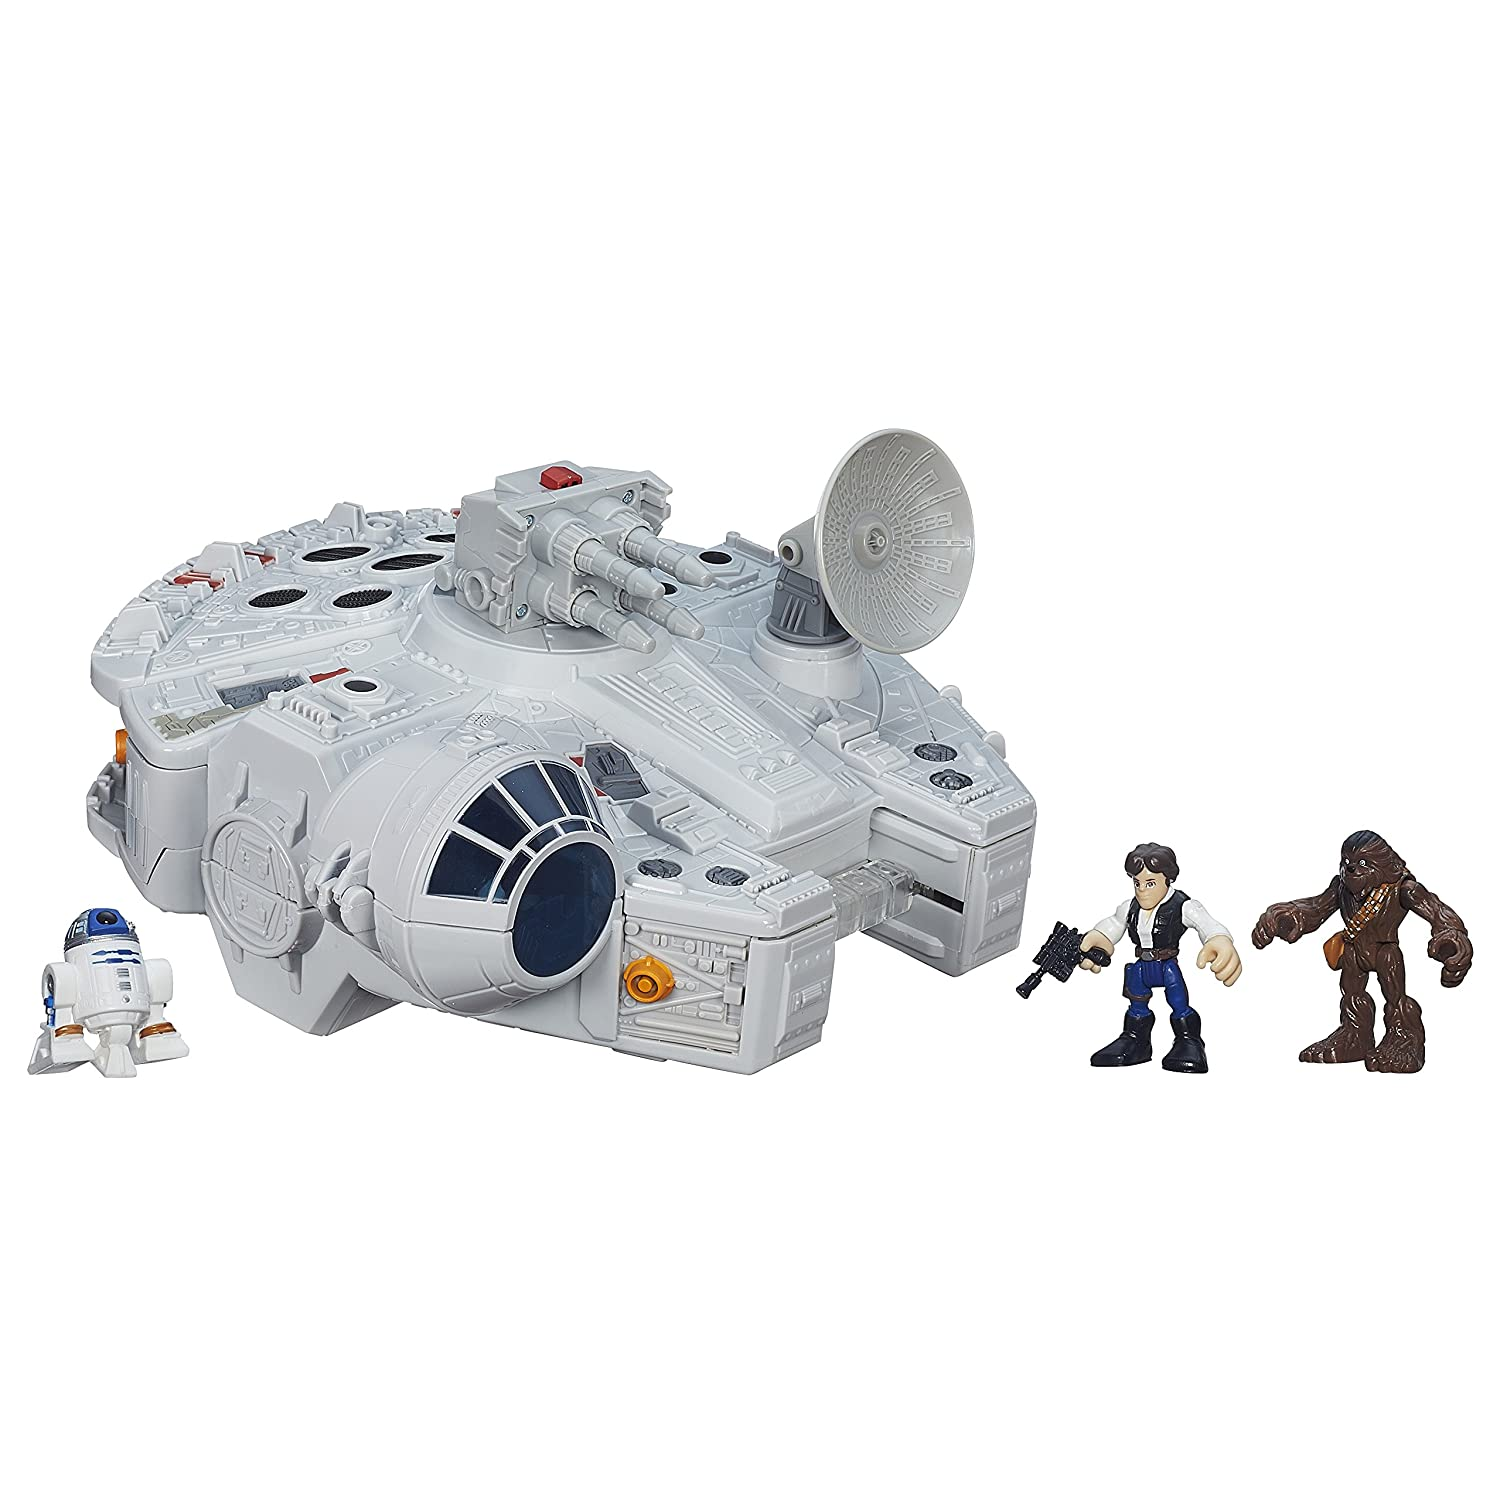 Star Wars Galactic Heroes Millennium Falcon and Figures